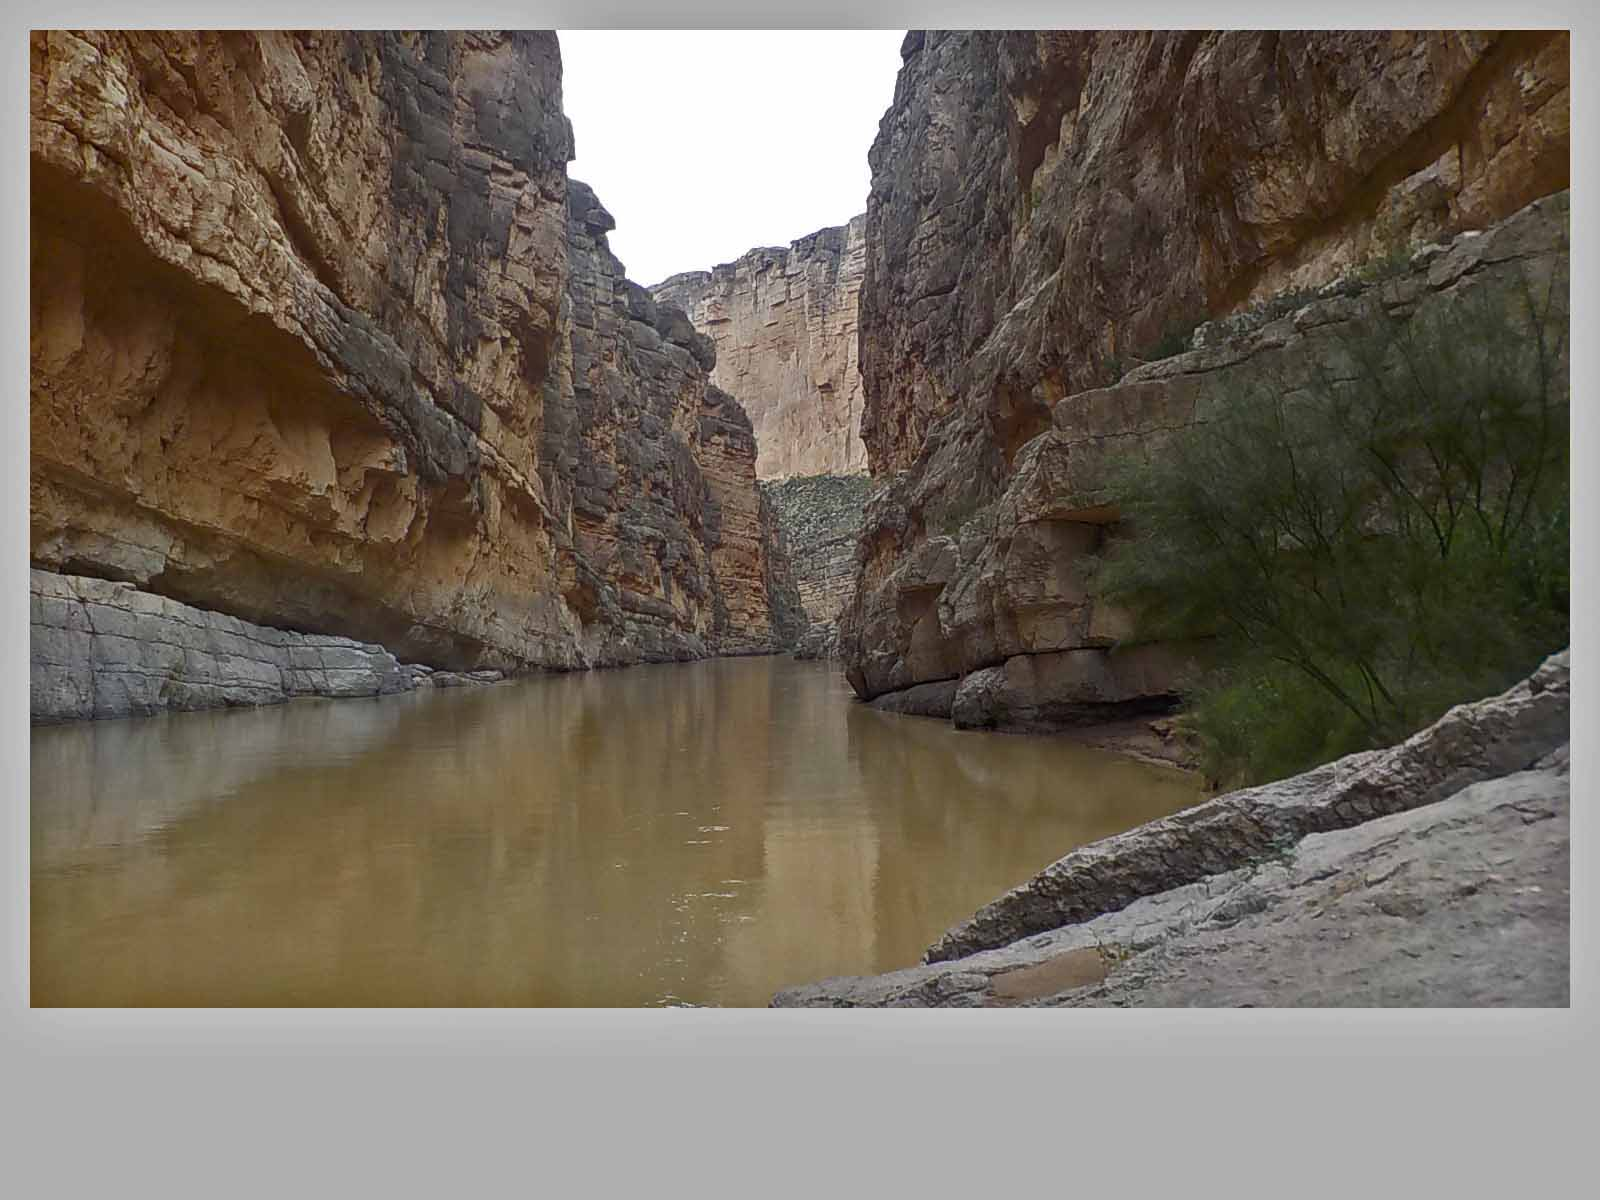 Santa Elena Canyon was a fun experience